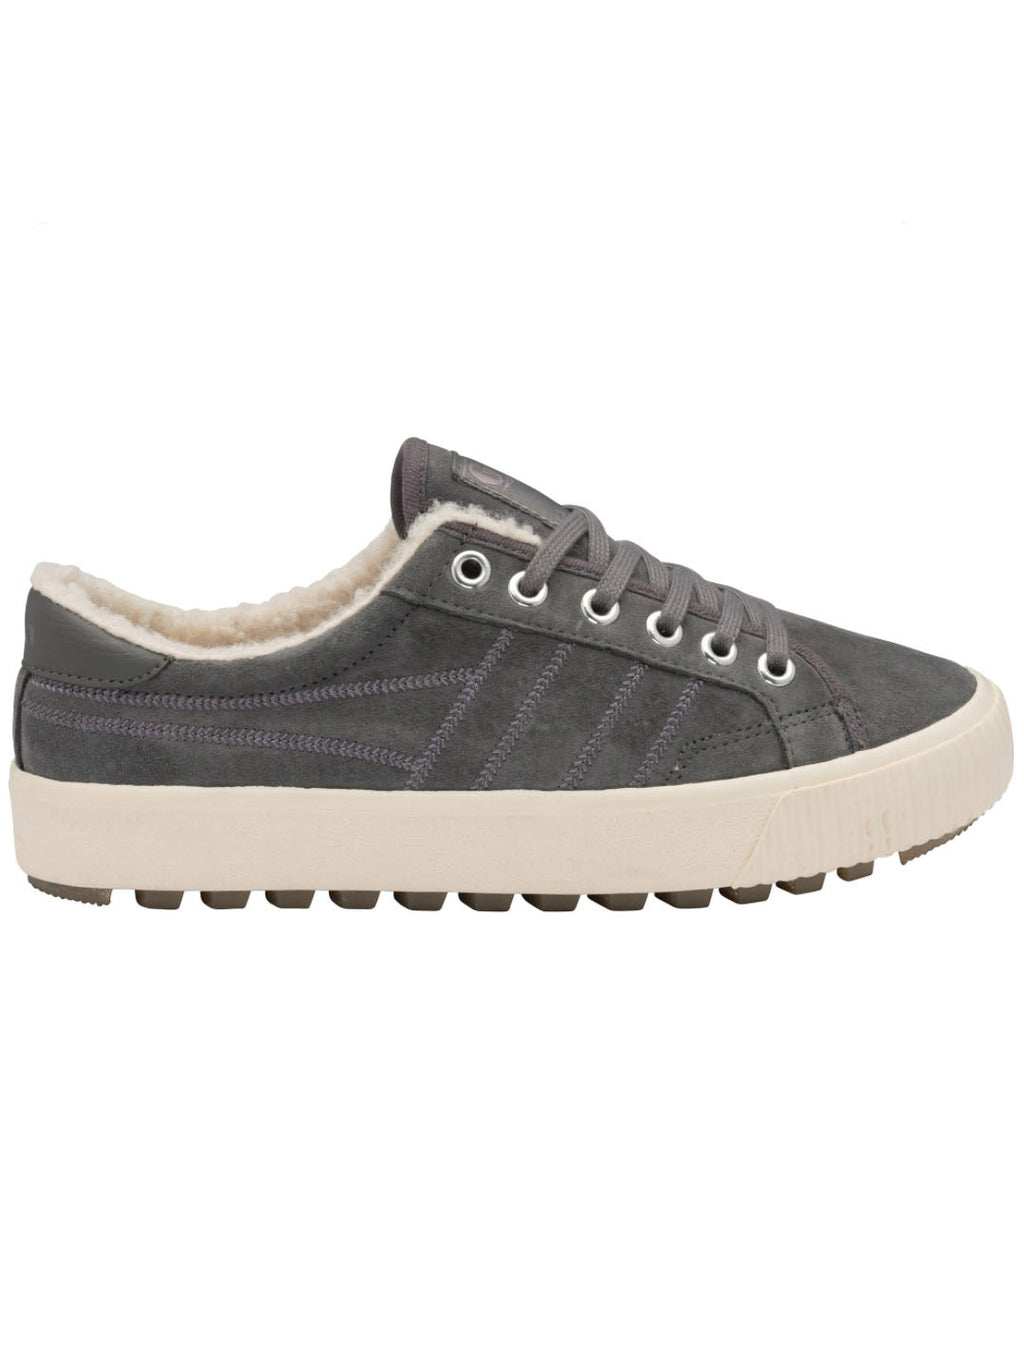 Gola Nordic Fleece Lined Sneaker in Ash